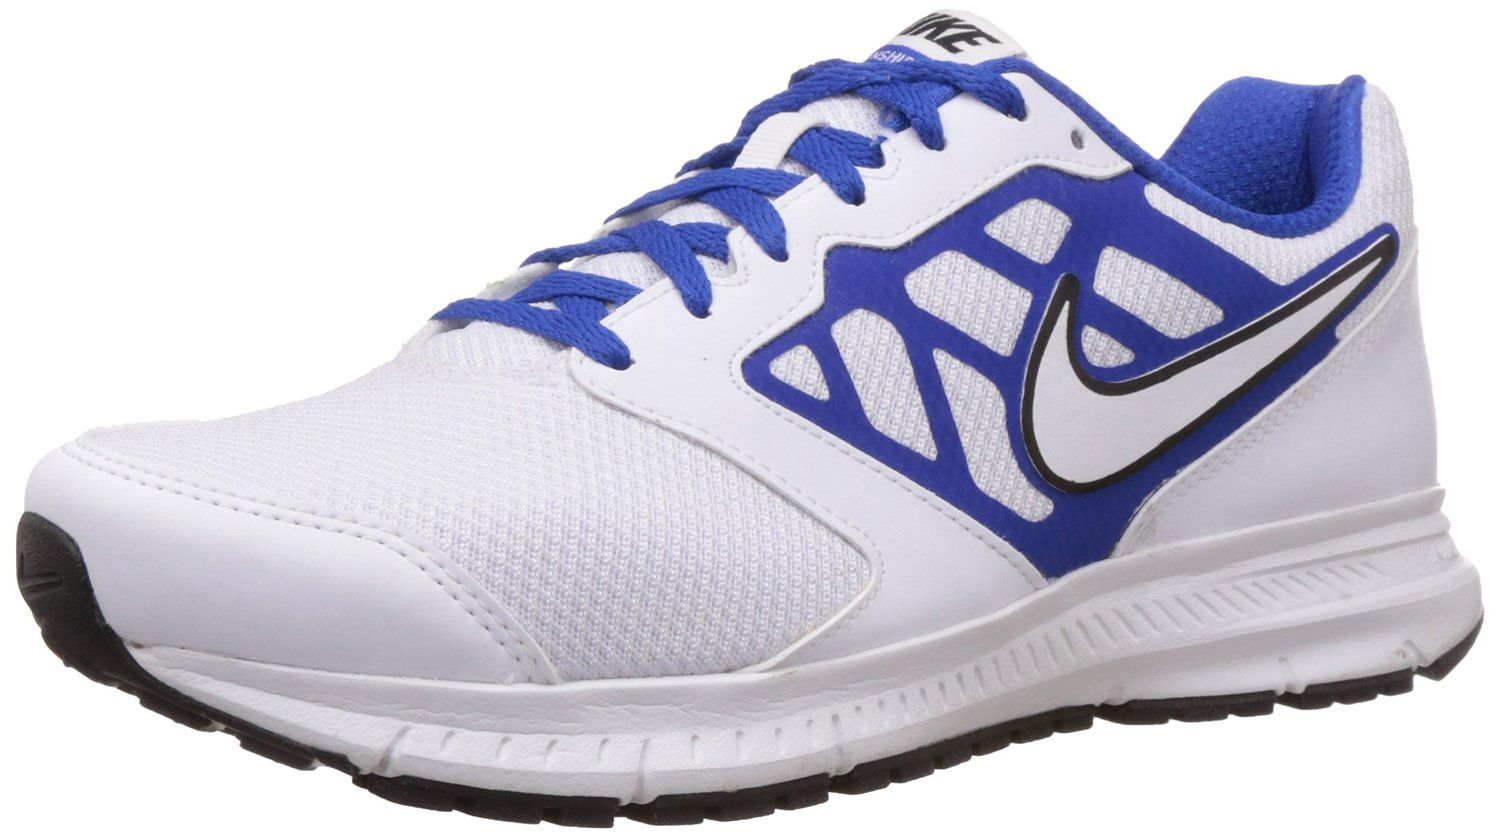 17c4a1a6c146 Nike Men s Downshifter 6 Msl Running Shoes  Buy Online at Low Prices in  India - Amazon.in